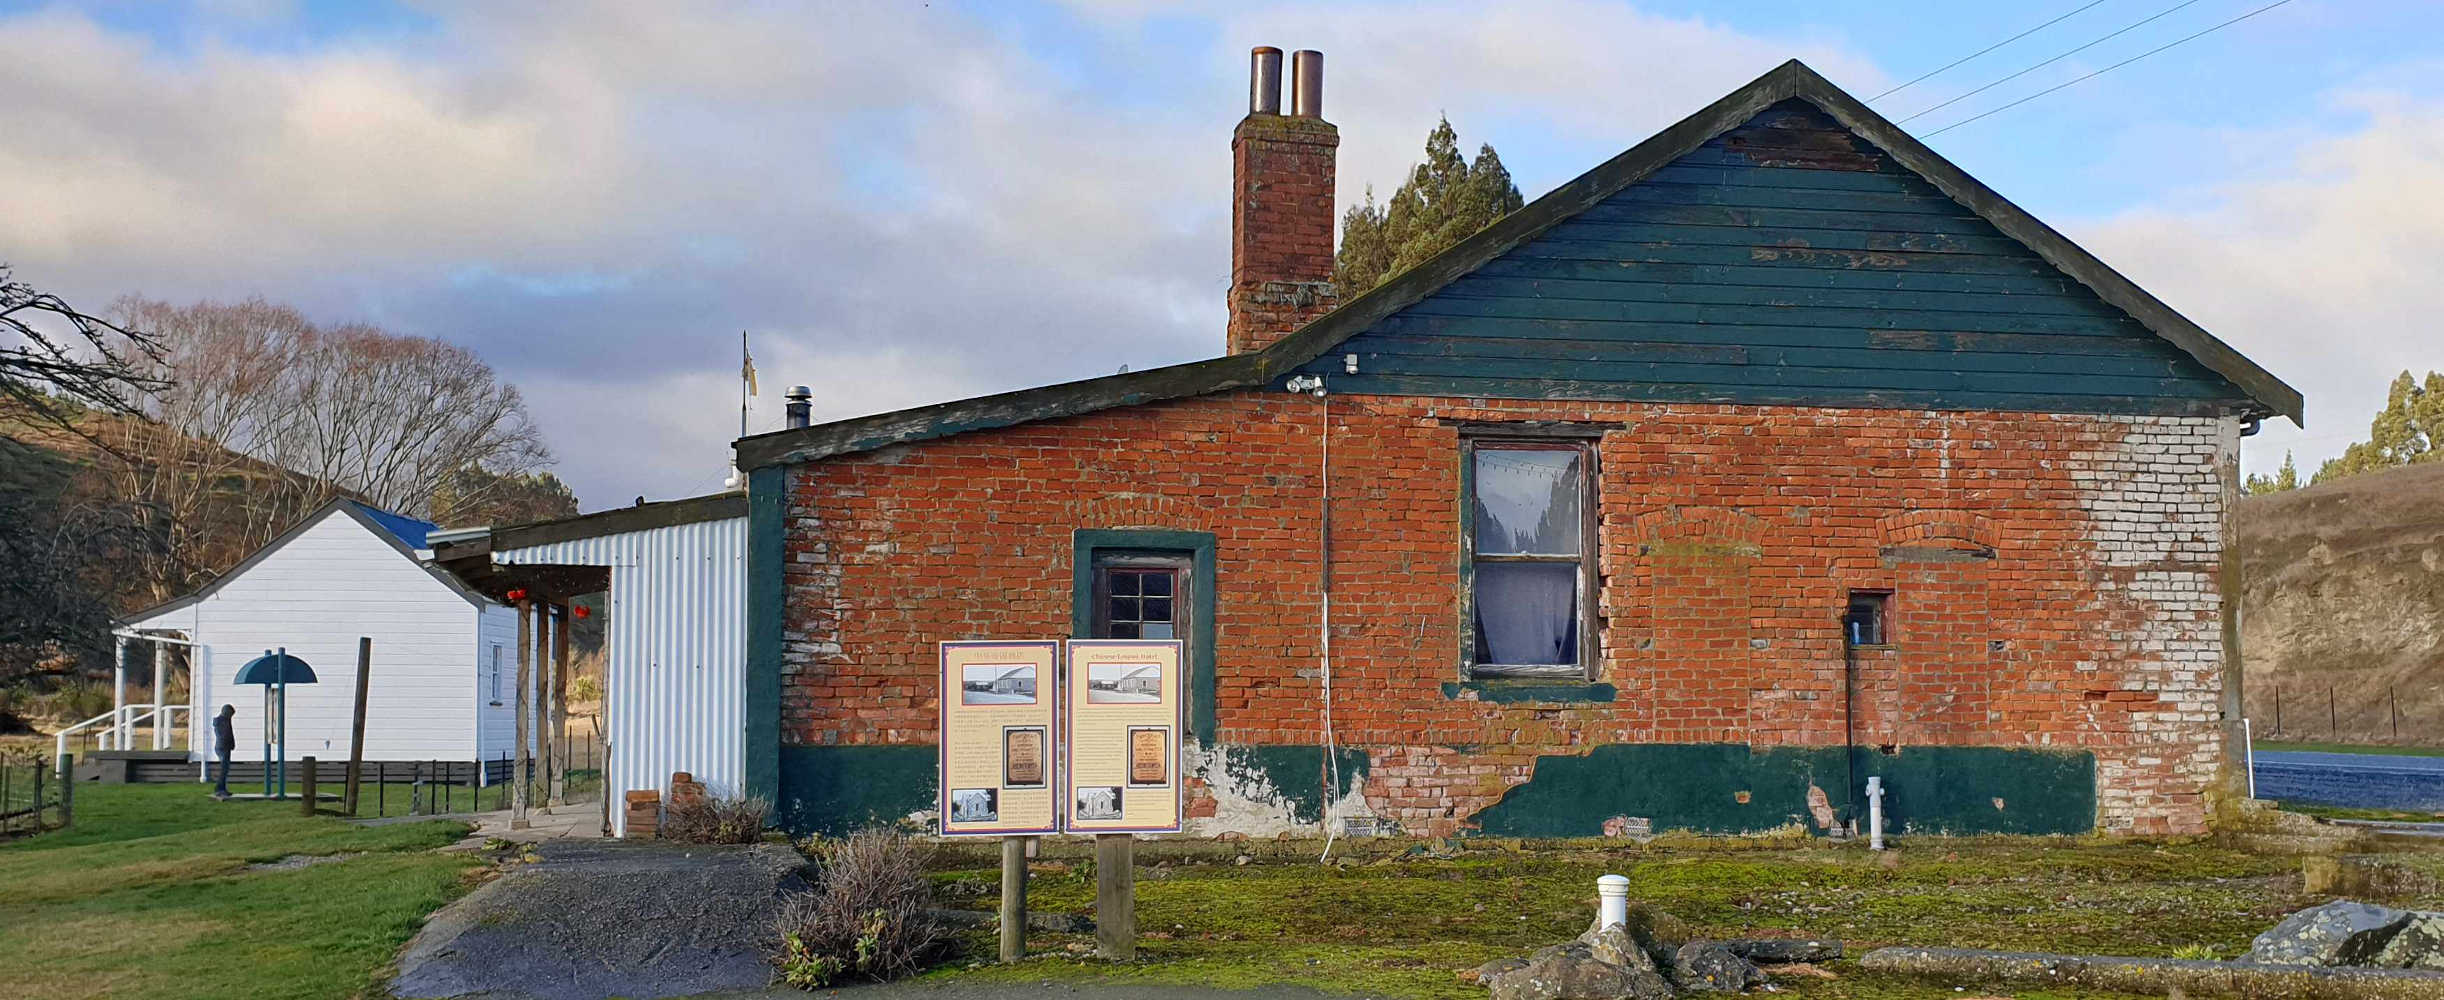 Historic pub in Chinese Mining Precinct, Lawrence, Joss House in background,New Zealand